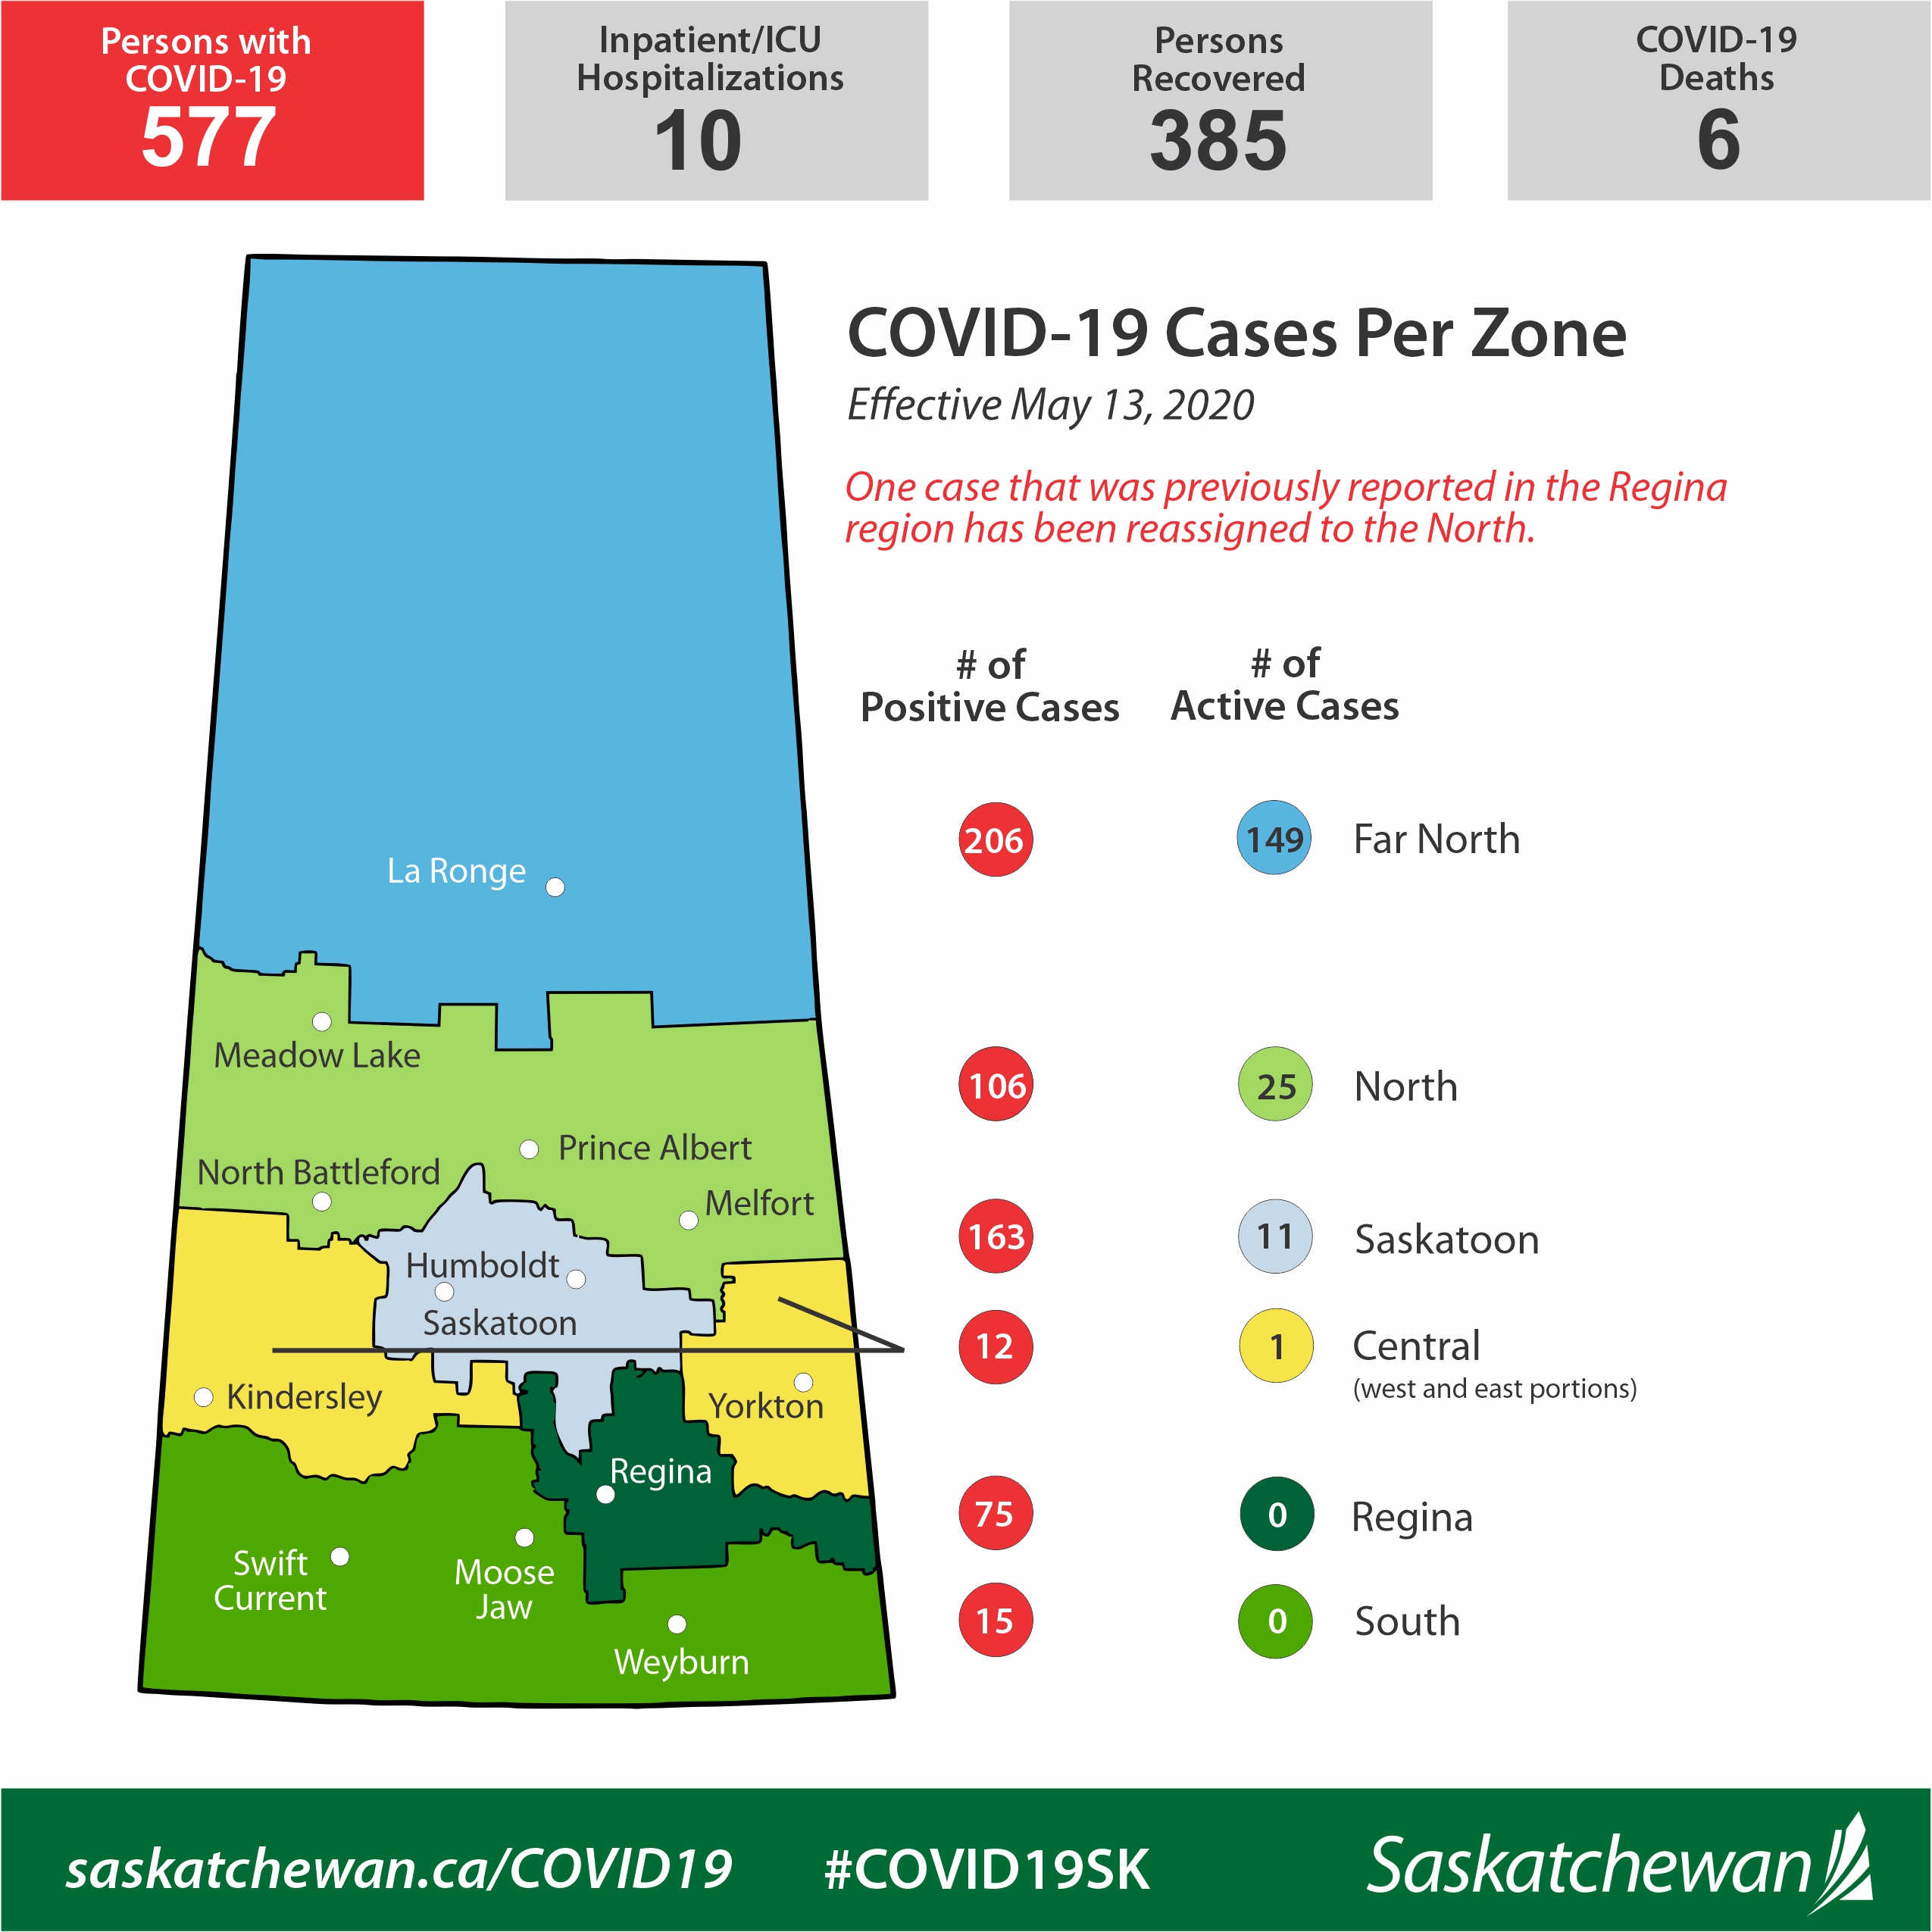 The latest COVID-19 numbers in the province as of May 13